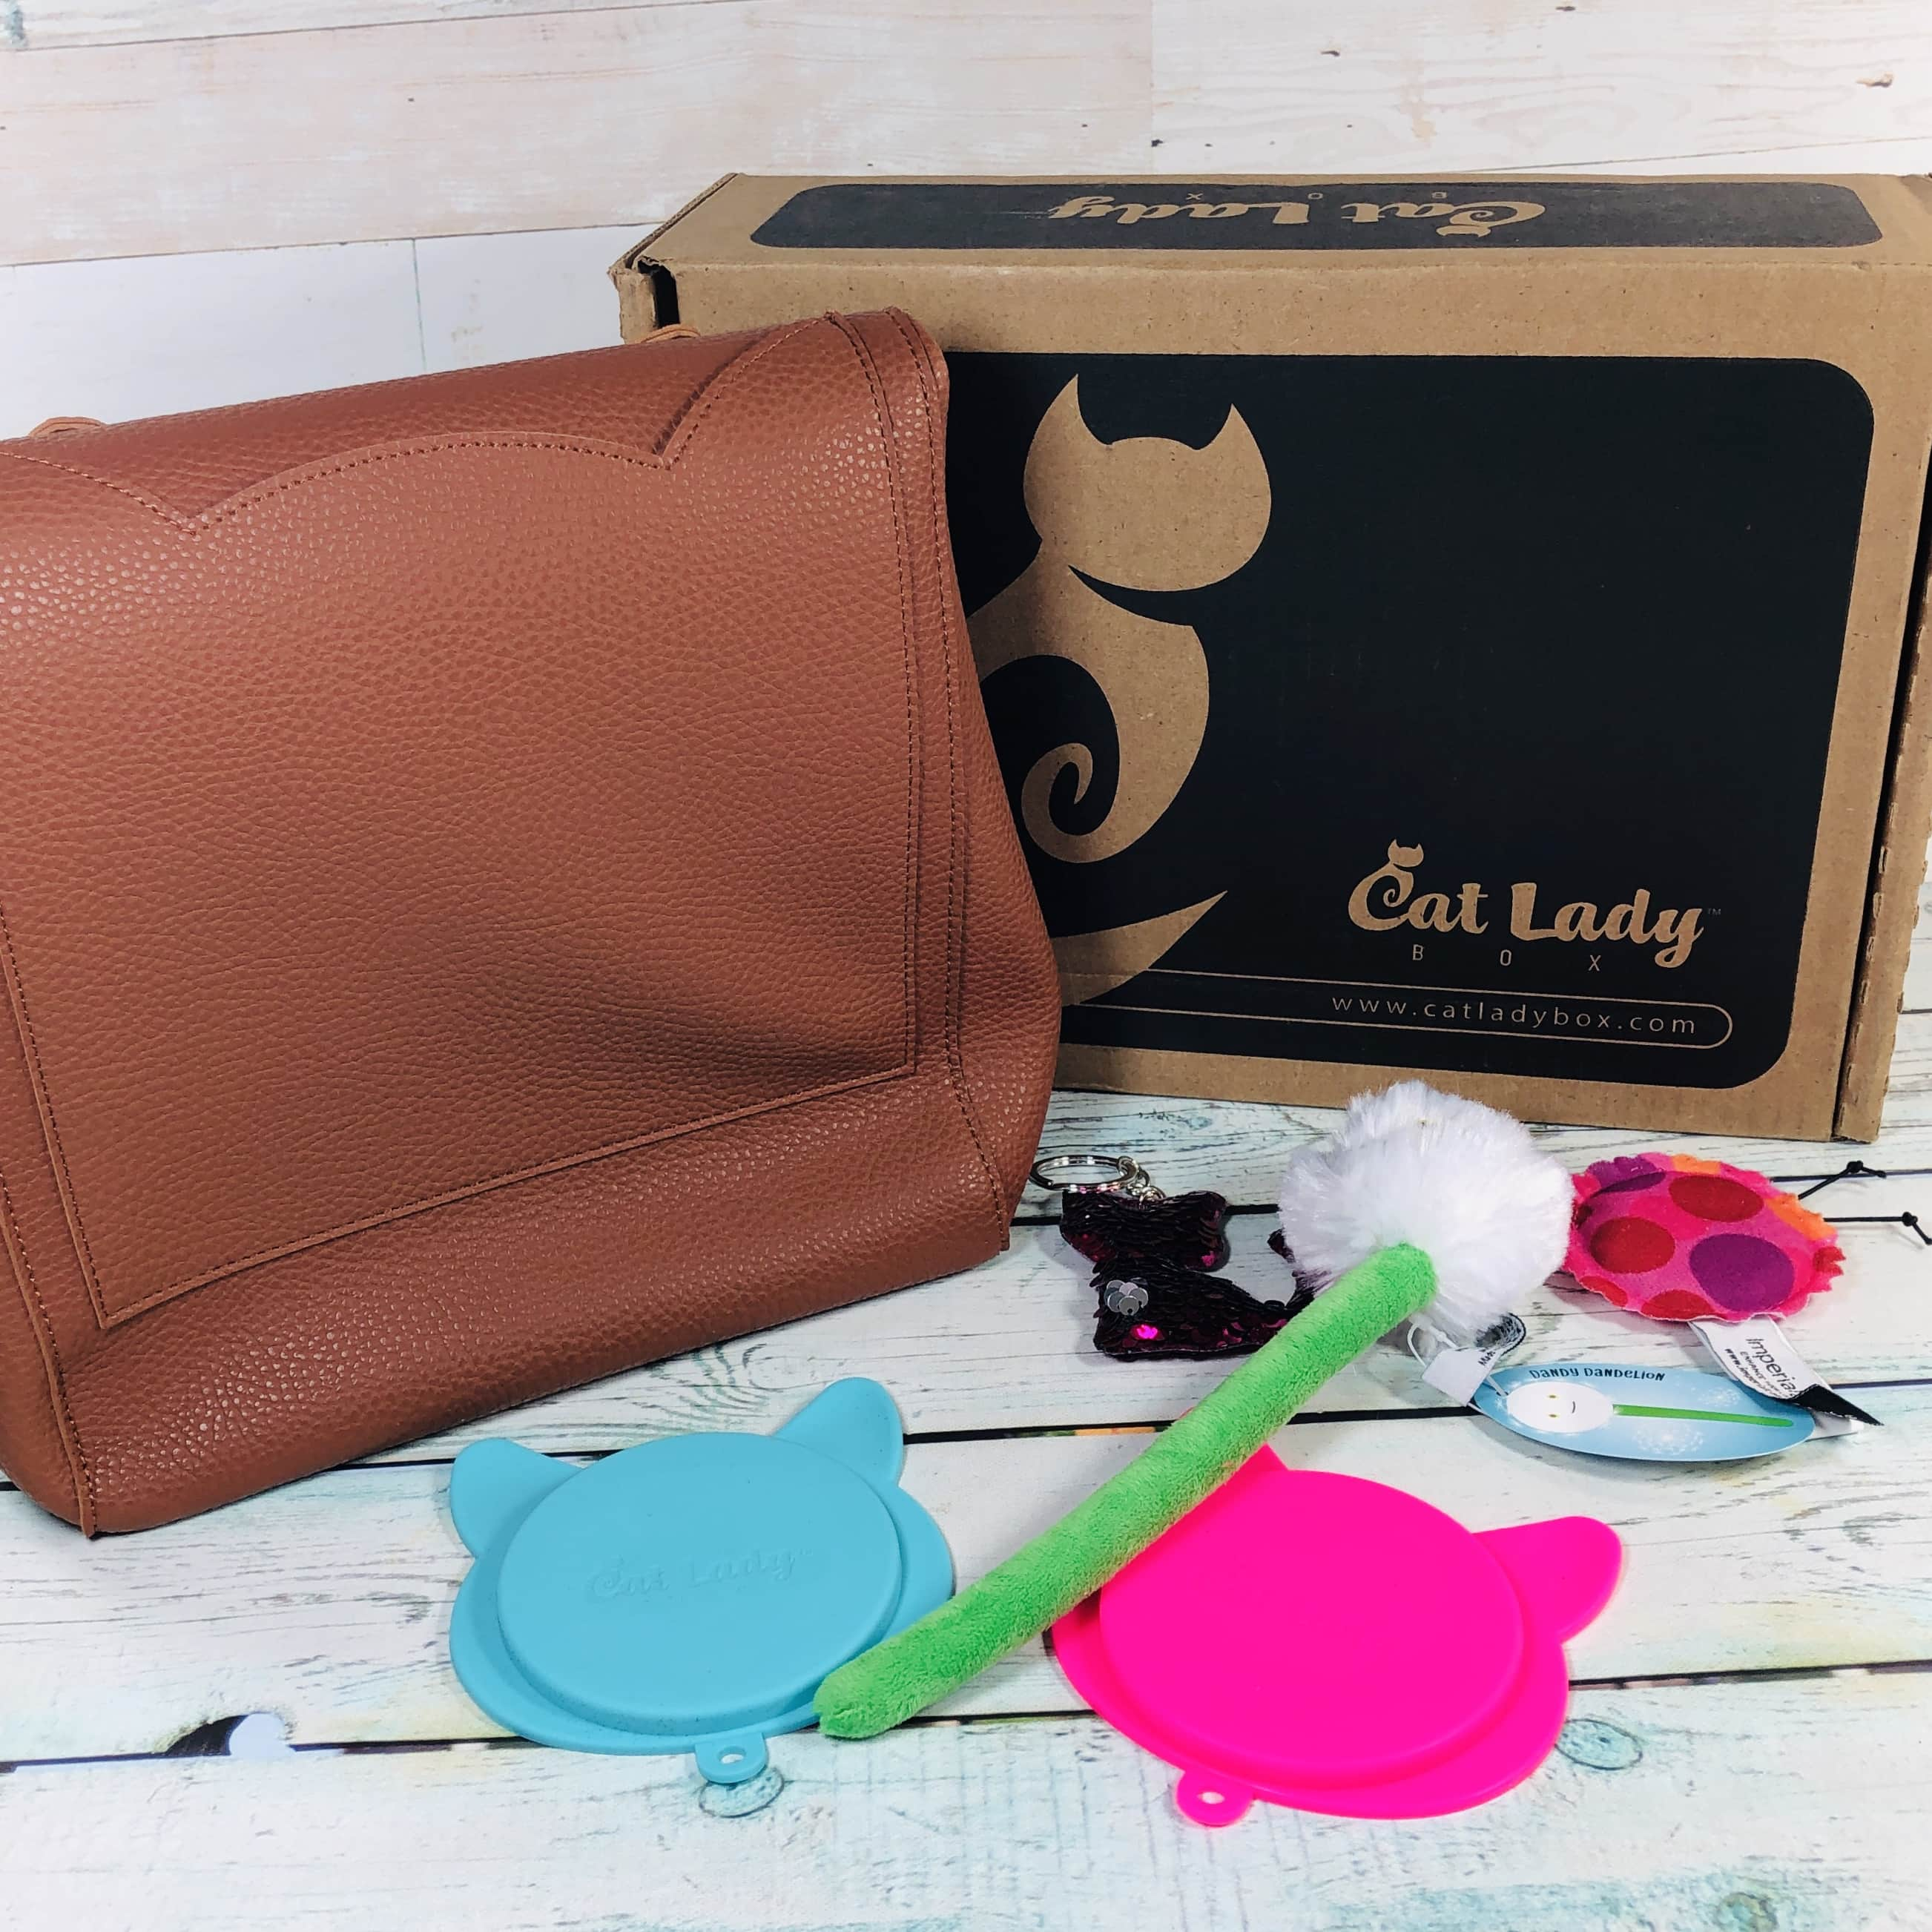 Cat Lady Box March 2019 Subscription Box Review + Coupon